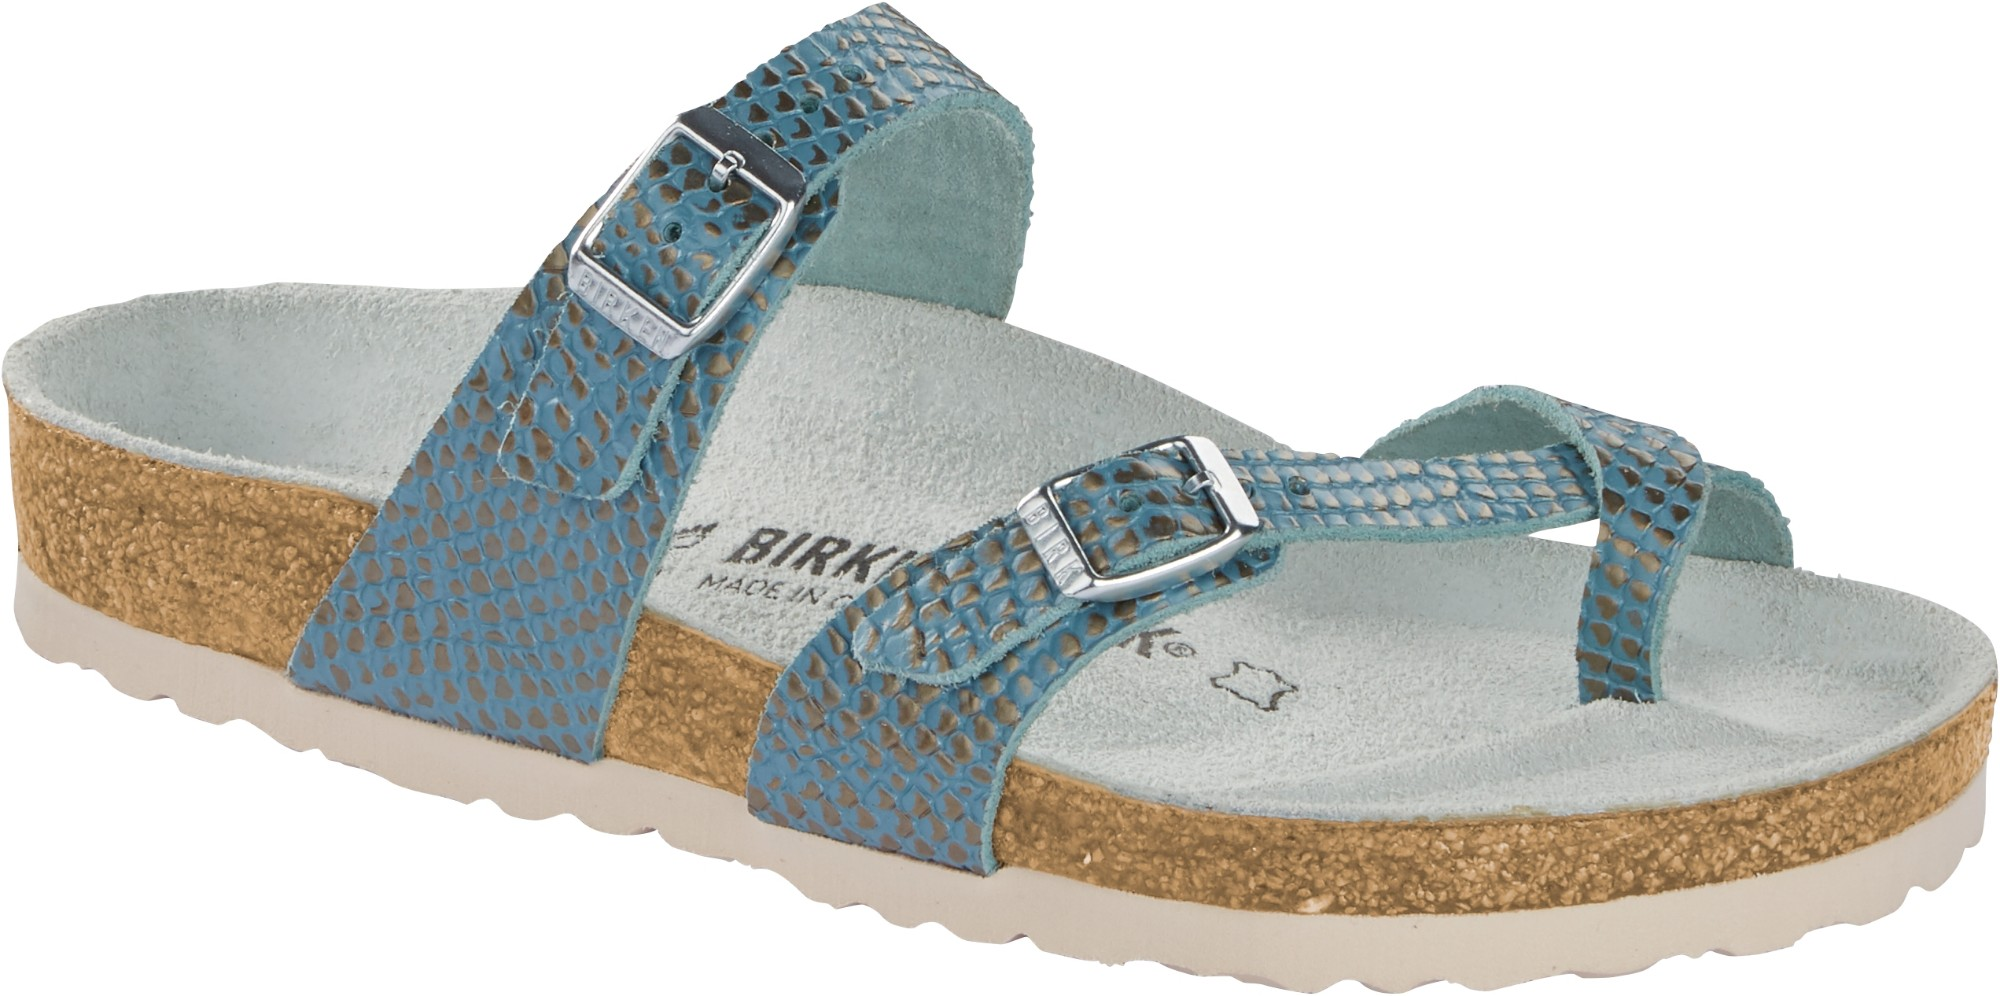 Birkenstock Mayari Mermaid Mermaid Aqua 37